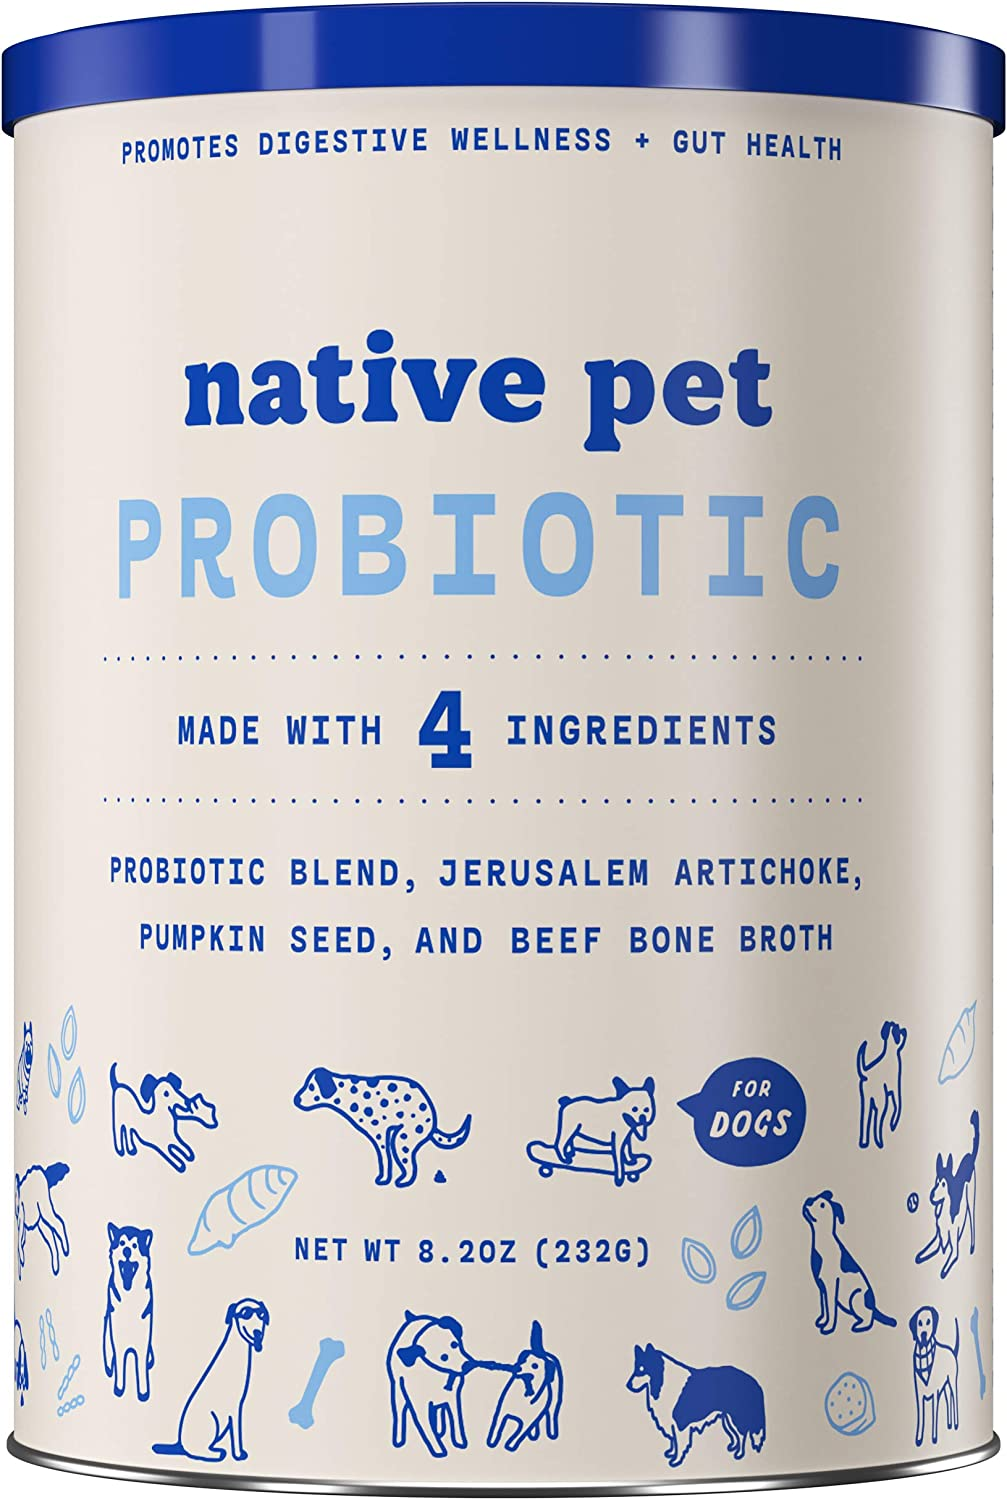 Native Pet Probiotic for Dogs - Vet Created Probiotic Powder for Dogs for Digestive Issues - Dog Probiotic Powder Blend + Prebiotic + Bone Broth - 232 Gram 6 Billion CFU - Probiotics Dogs Will Love!